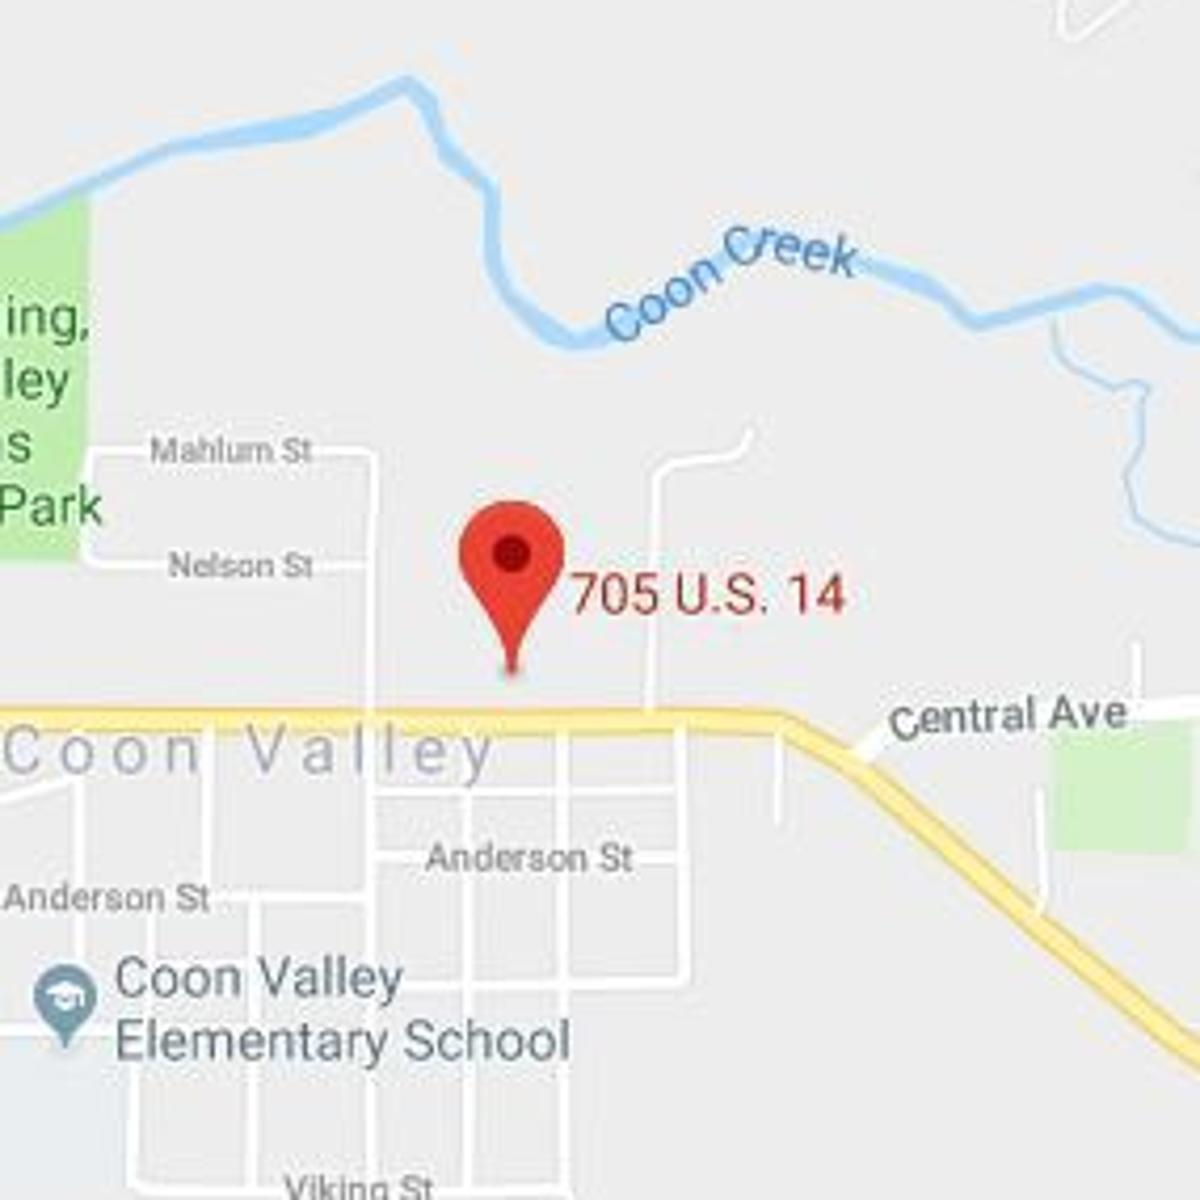 Two hurt in gunfire incident in Coon Valley, police say